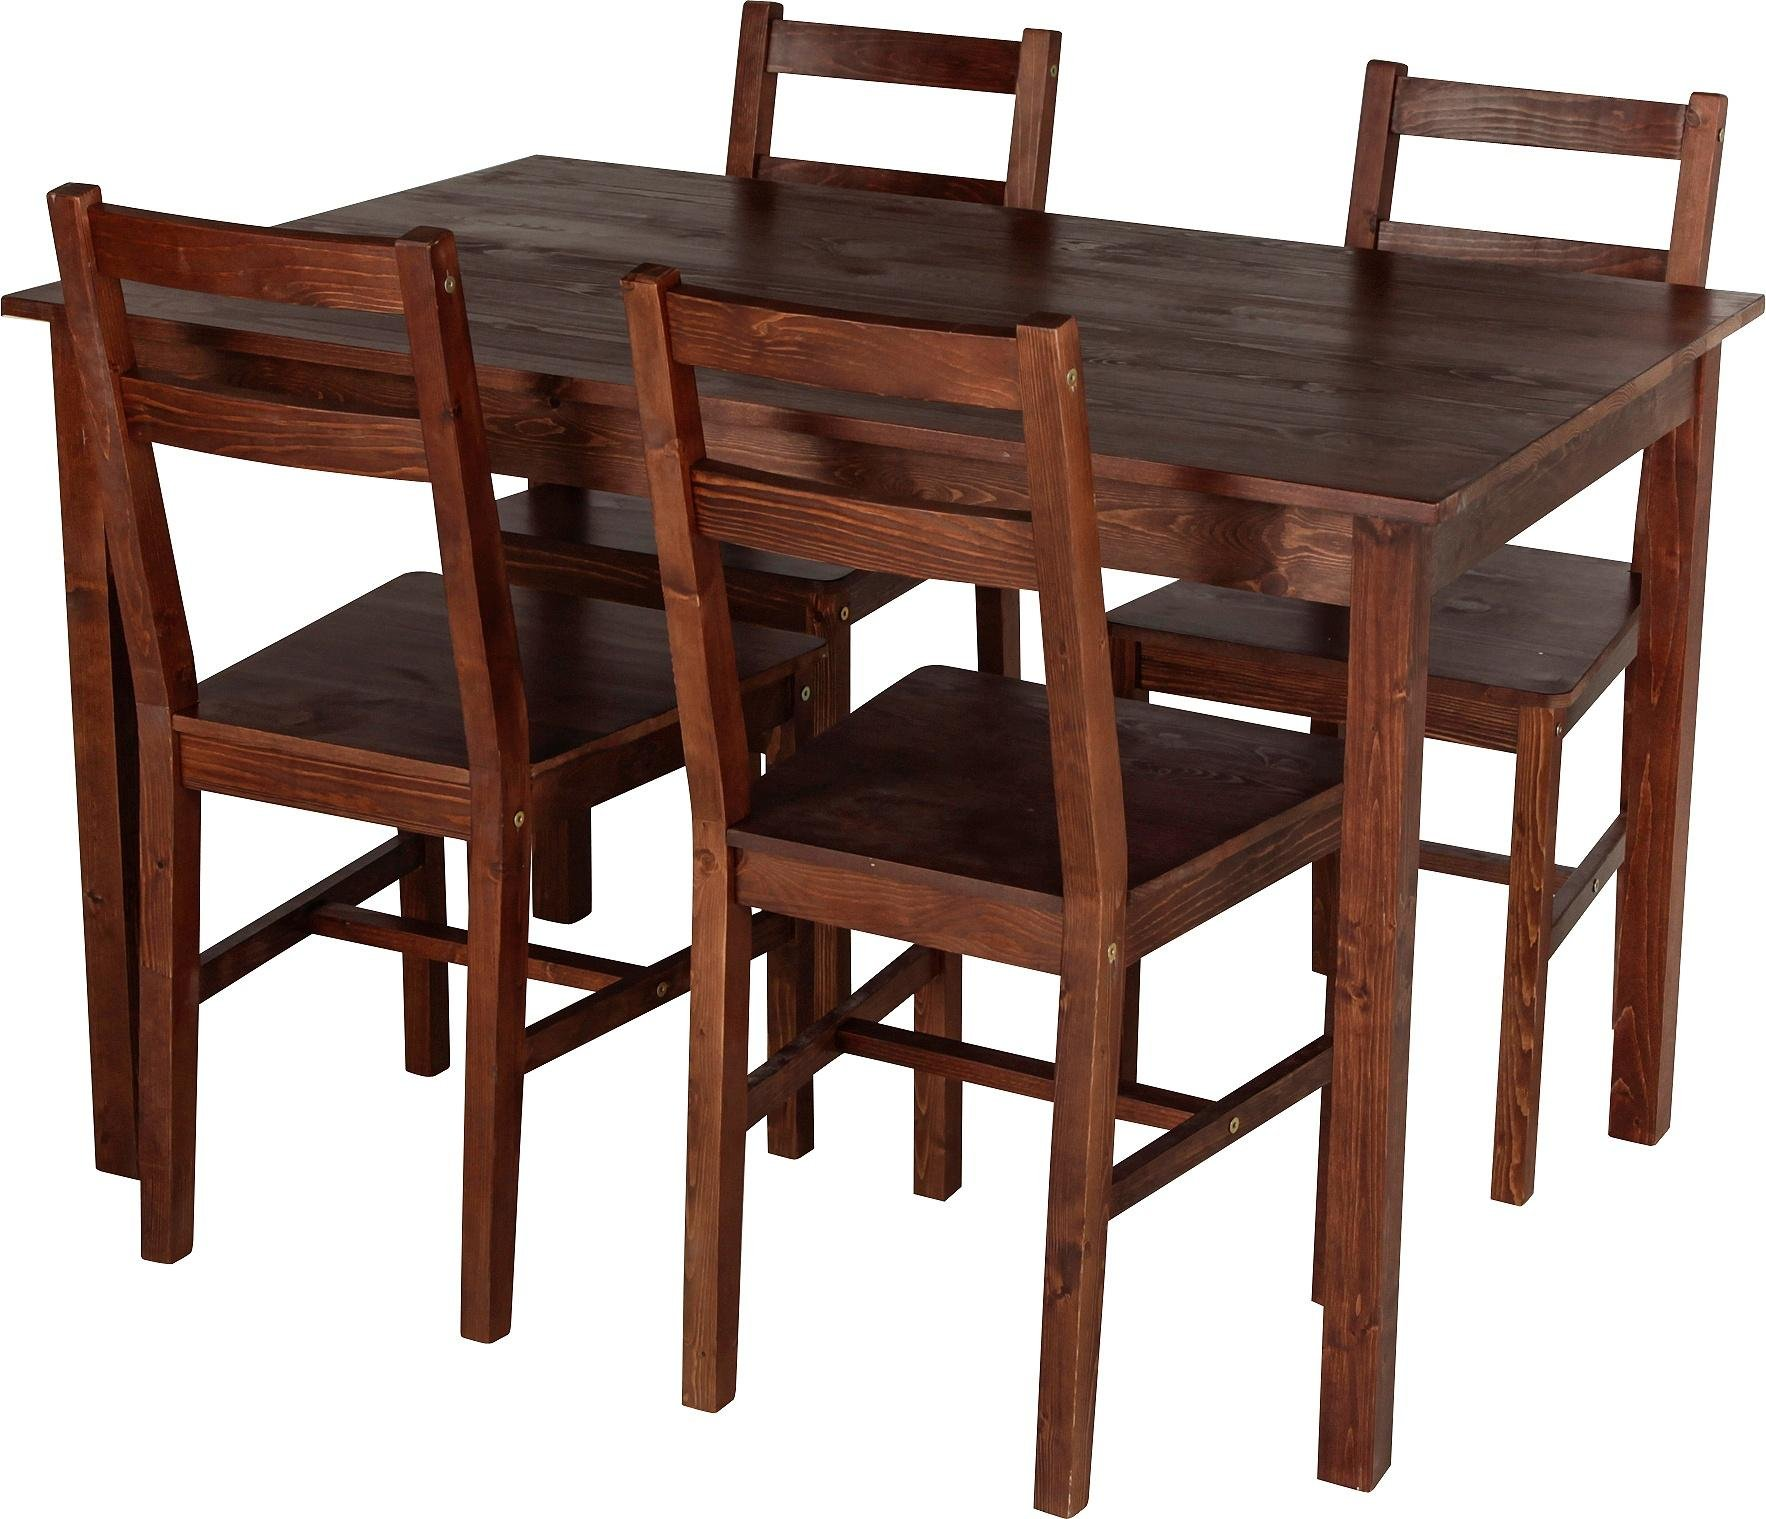 Buy HOME Raye Solid Wood Dining Table 4 Chairs Dark Pine at